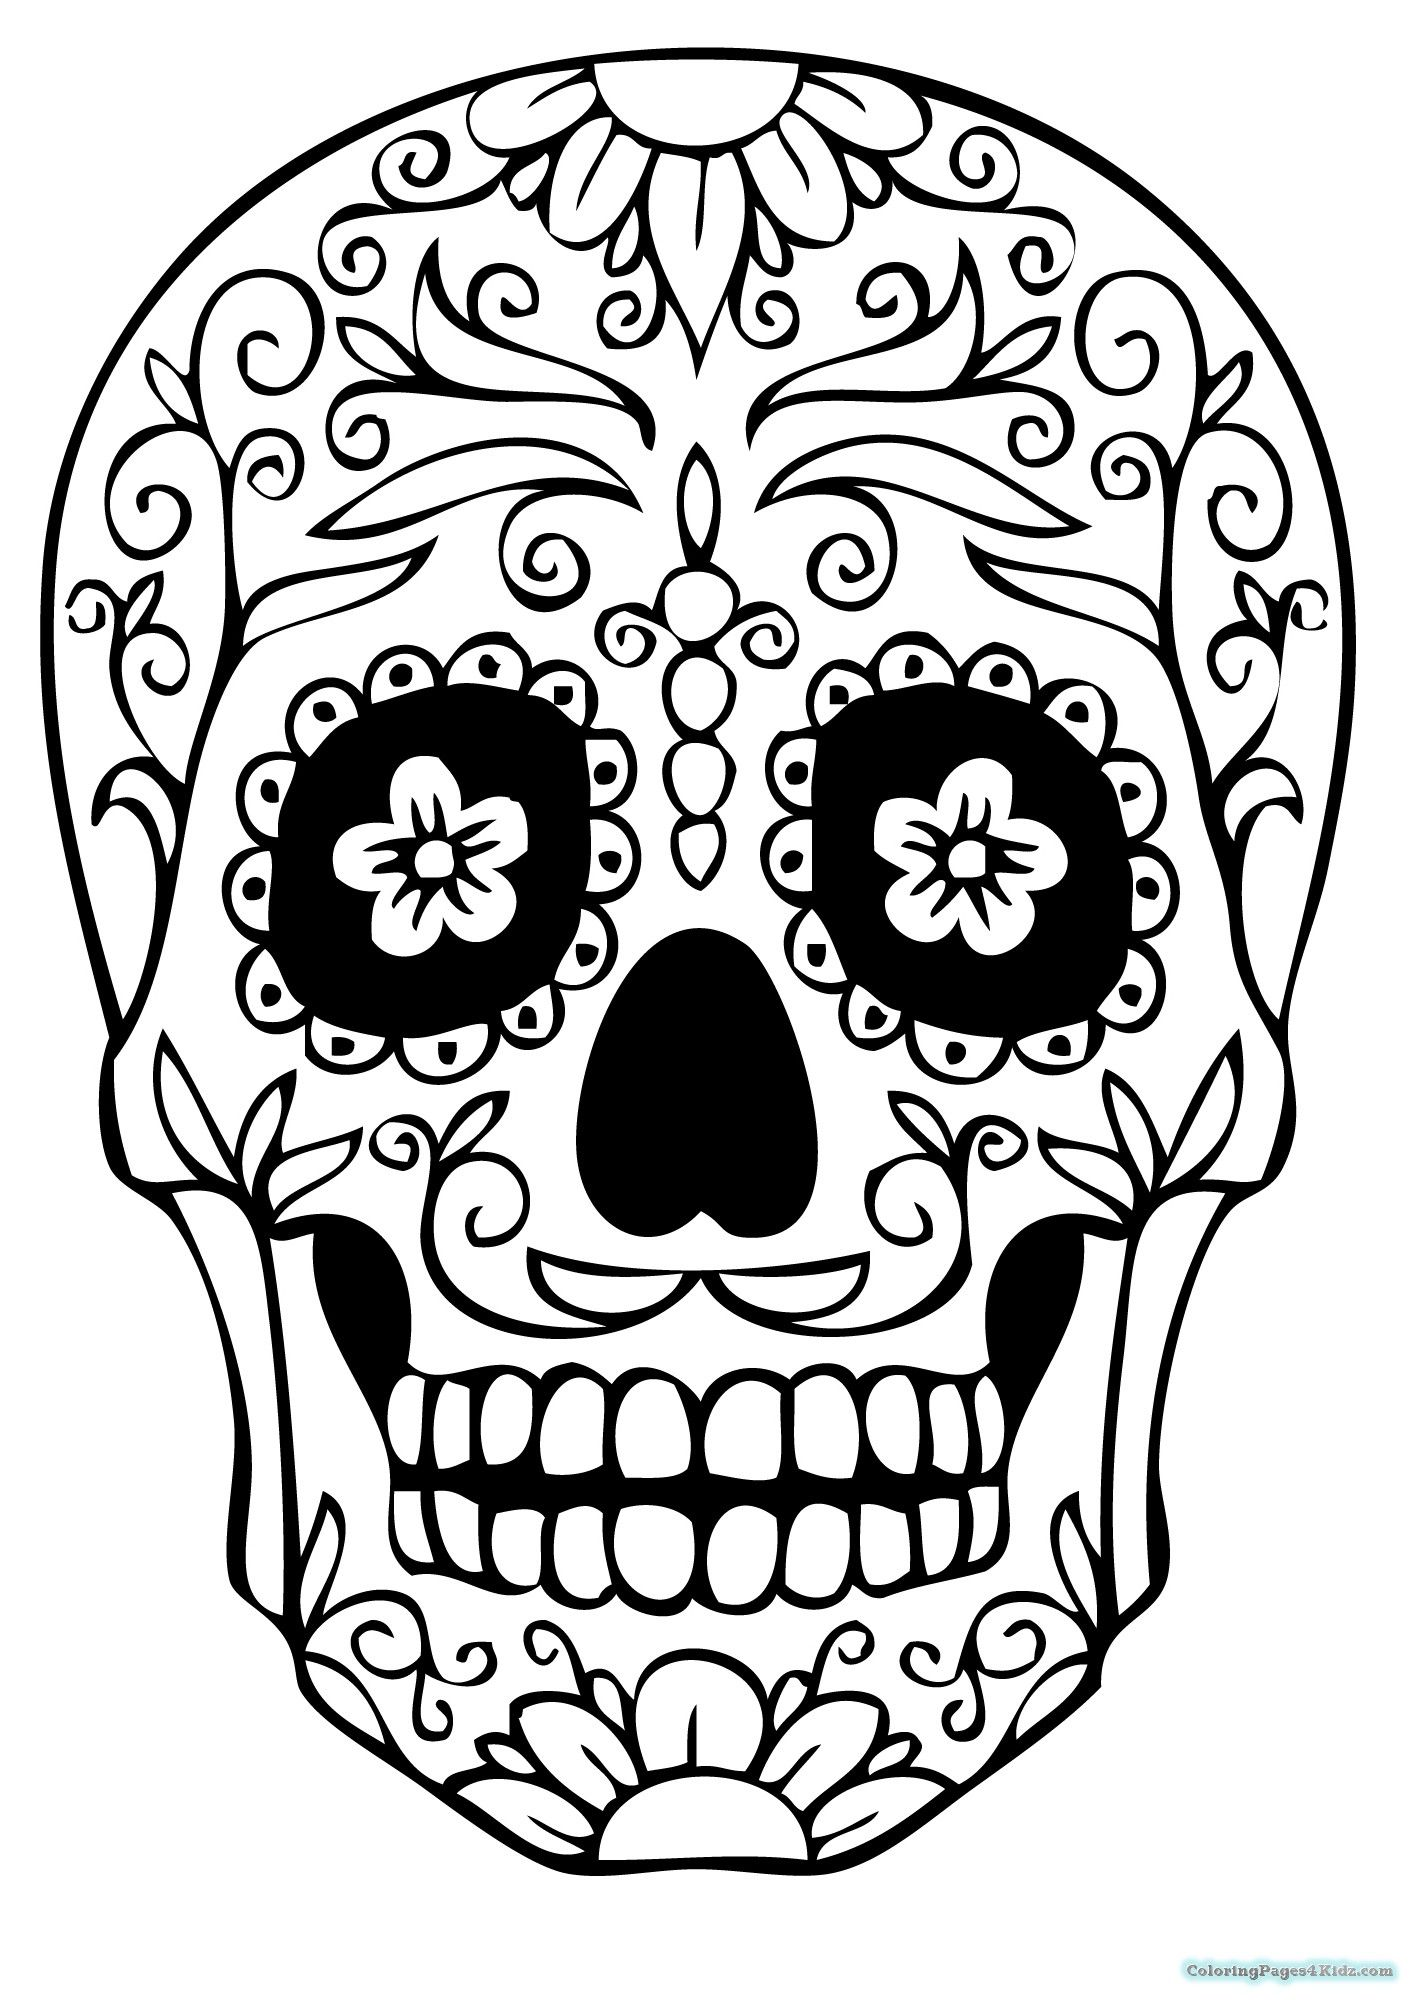 day of dead skull template grateful dead skull coloring pages skull of dead day template